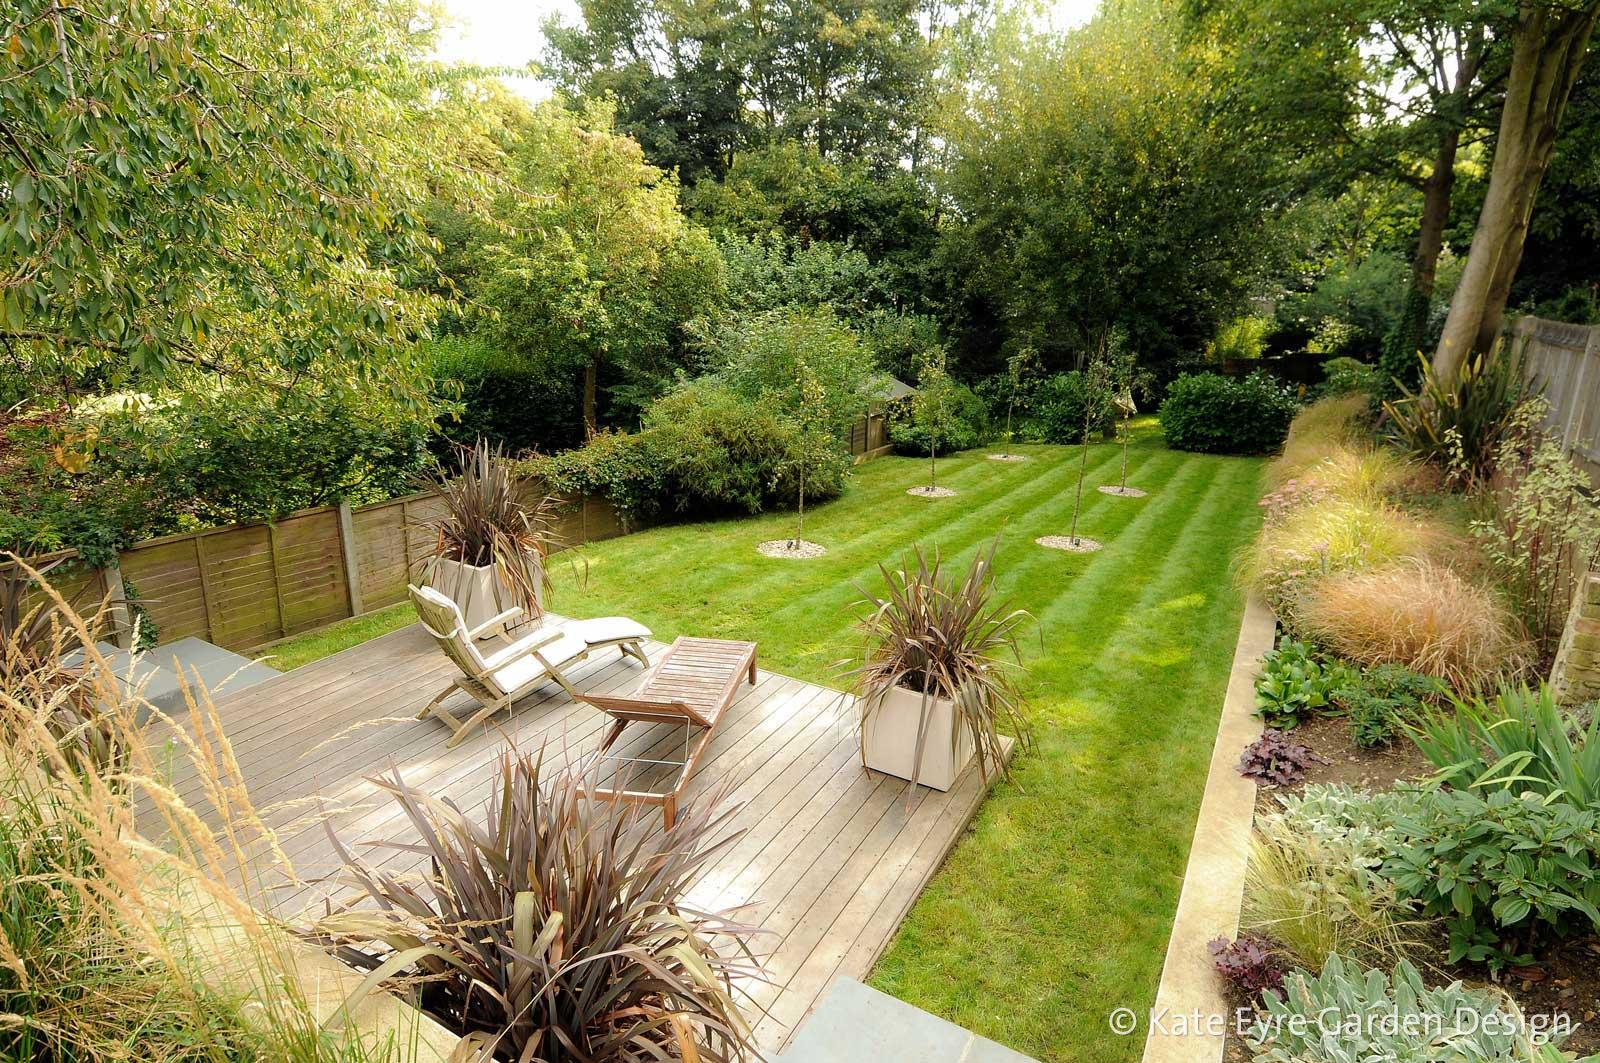 Garden design in crystal palace south east london for Design my garden